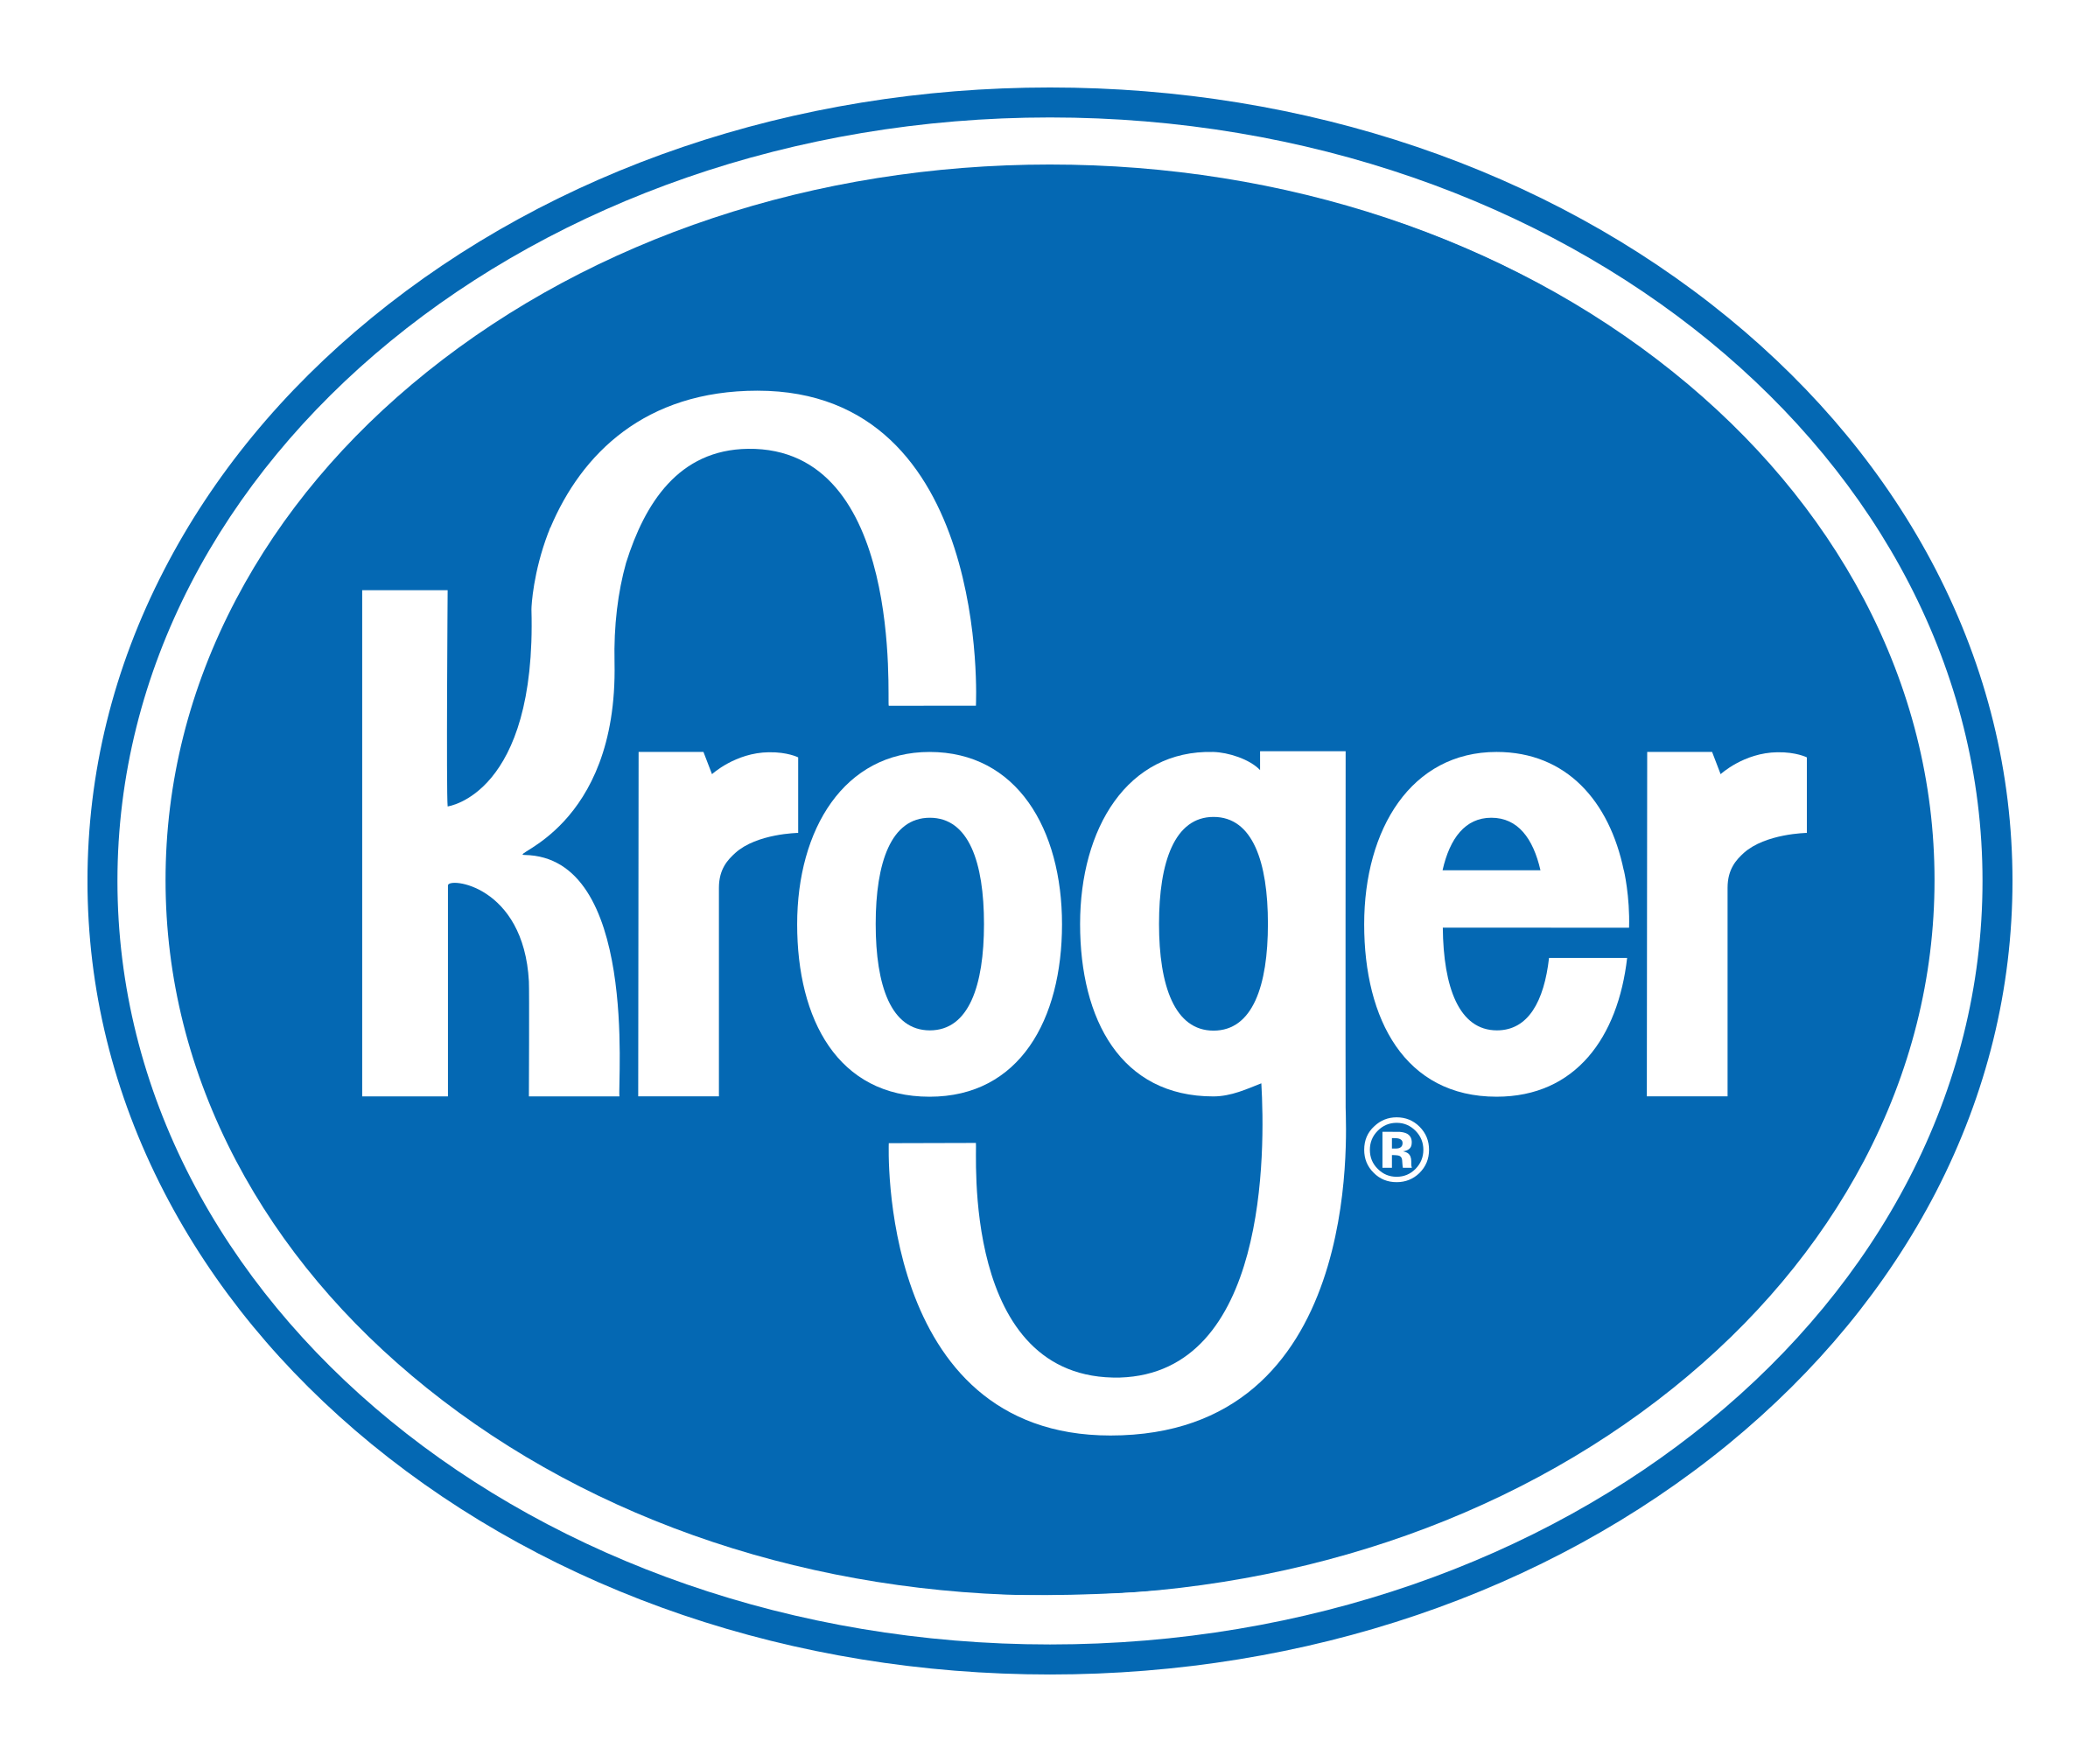 Kroger Logo PNG Transparent & SVG Vector.